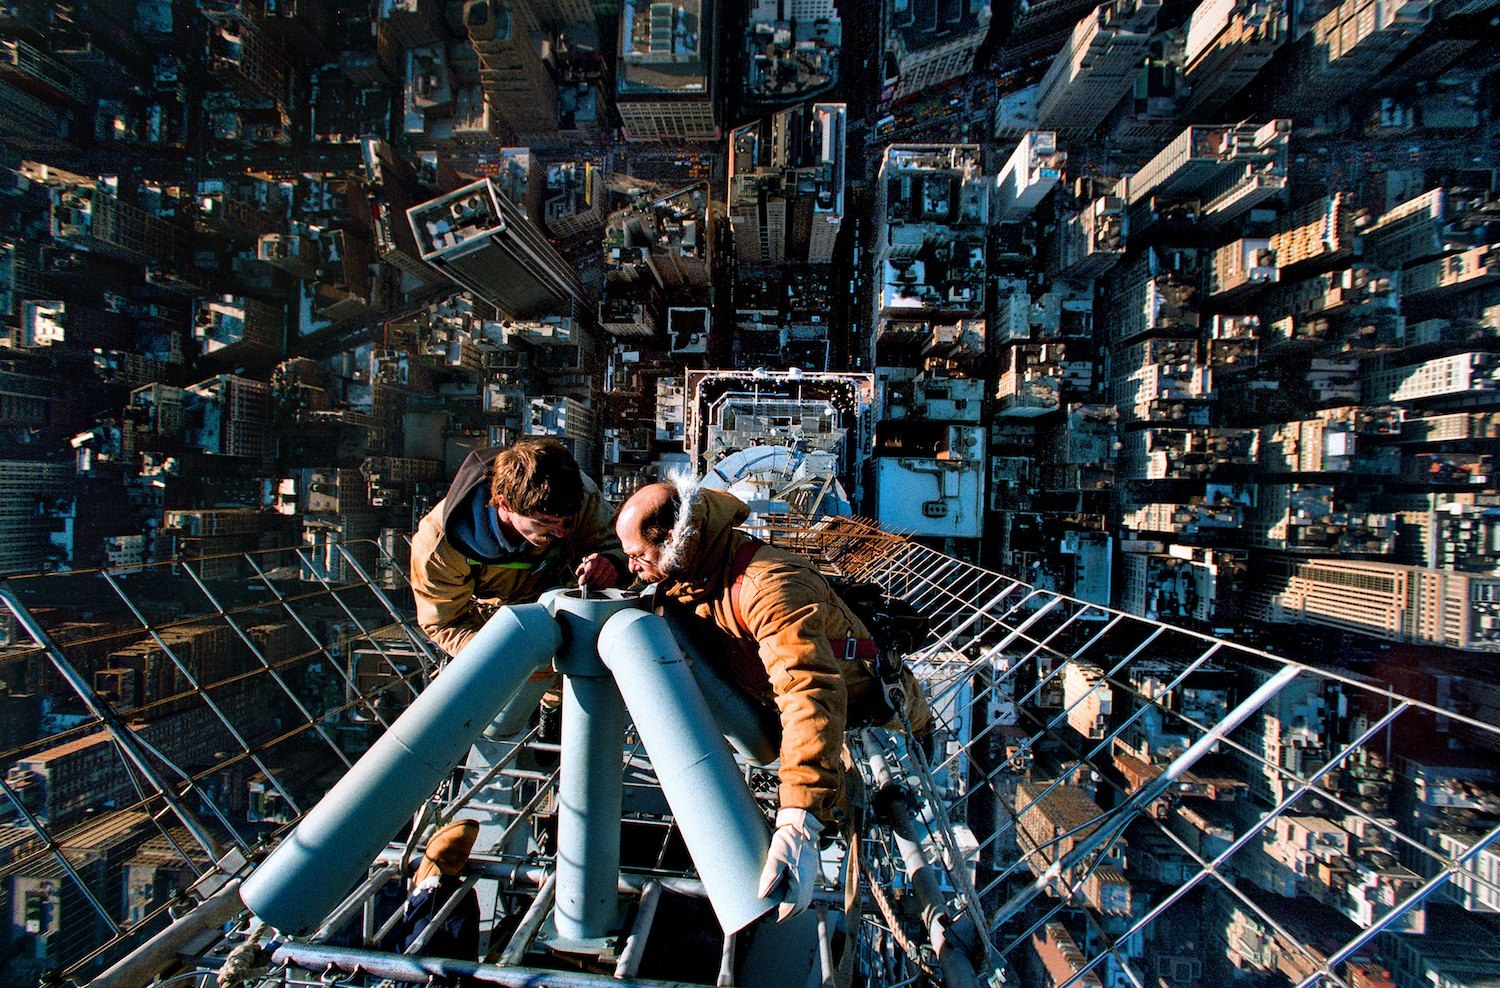 Cleaning the antenna of the Empire State Building - Vincent Laforet